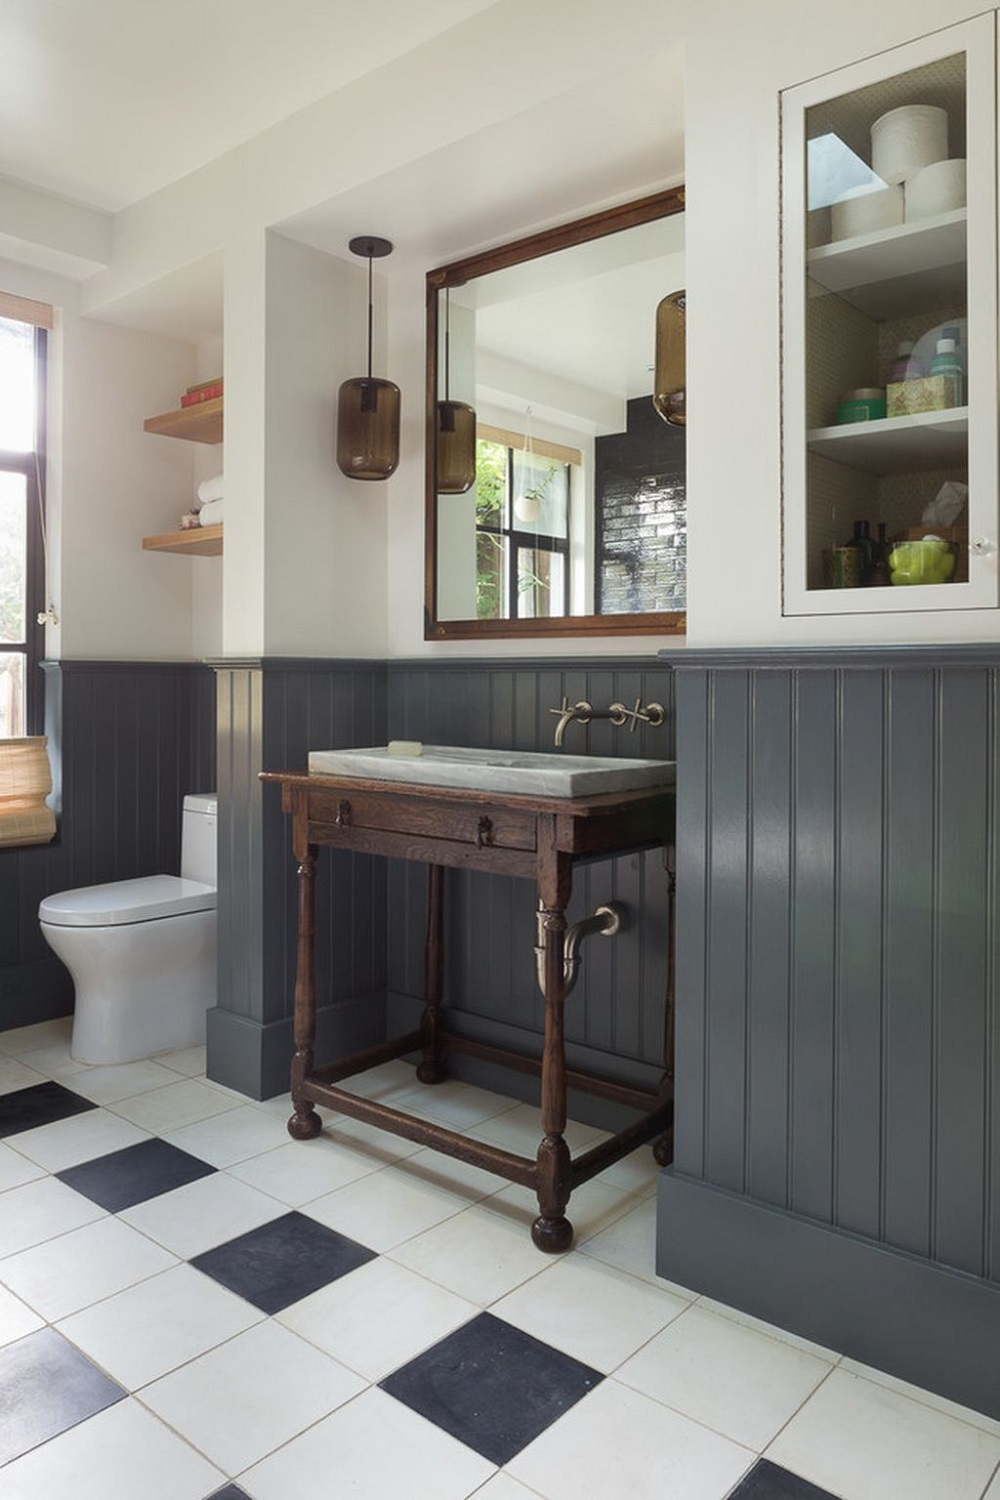 w11 How to take full advantage of these clad bathroom ideas